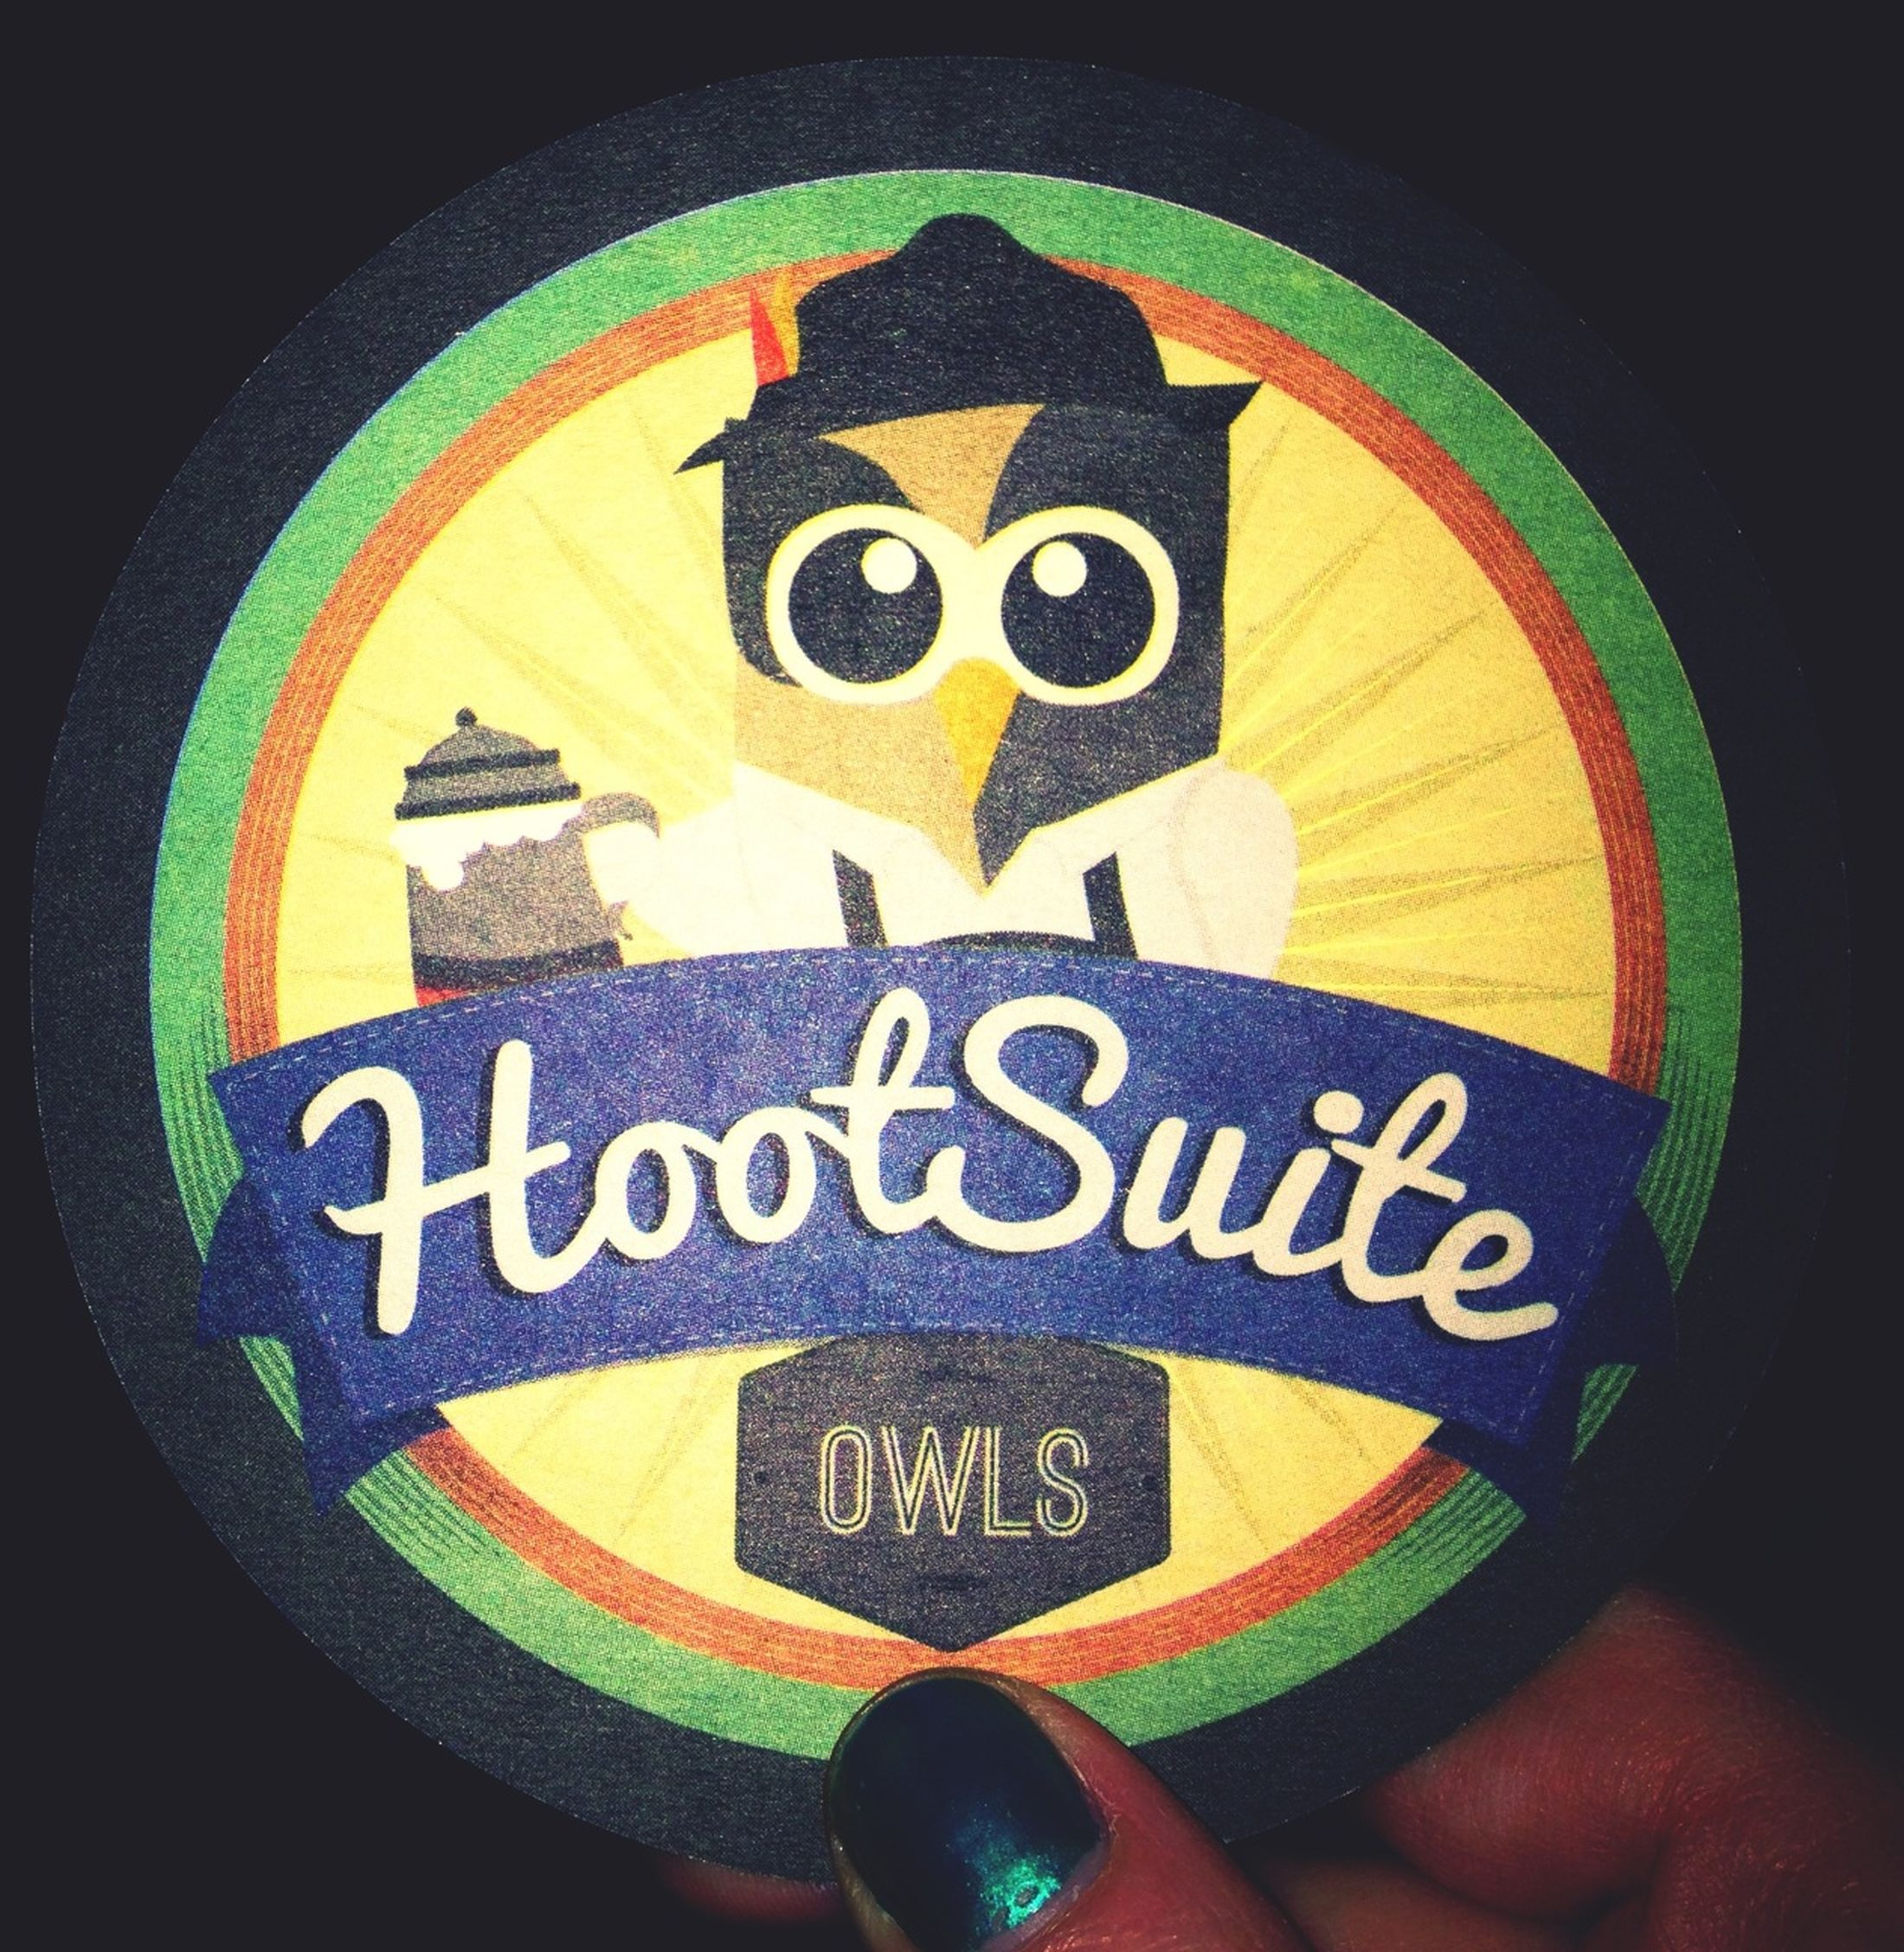 Love Hootsuite's branding... owls, beer and social media. Workshop at #FPLiv